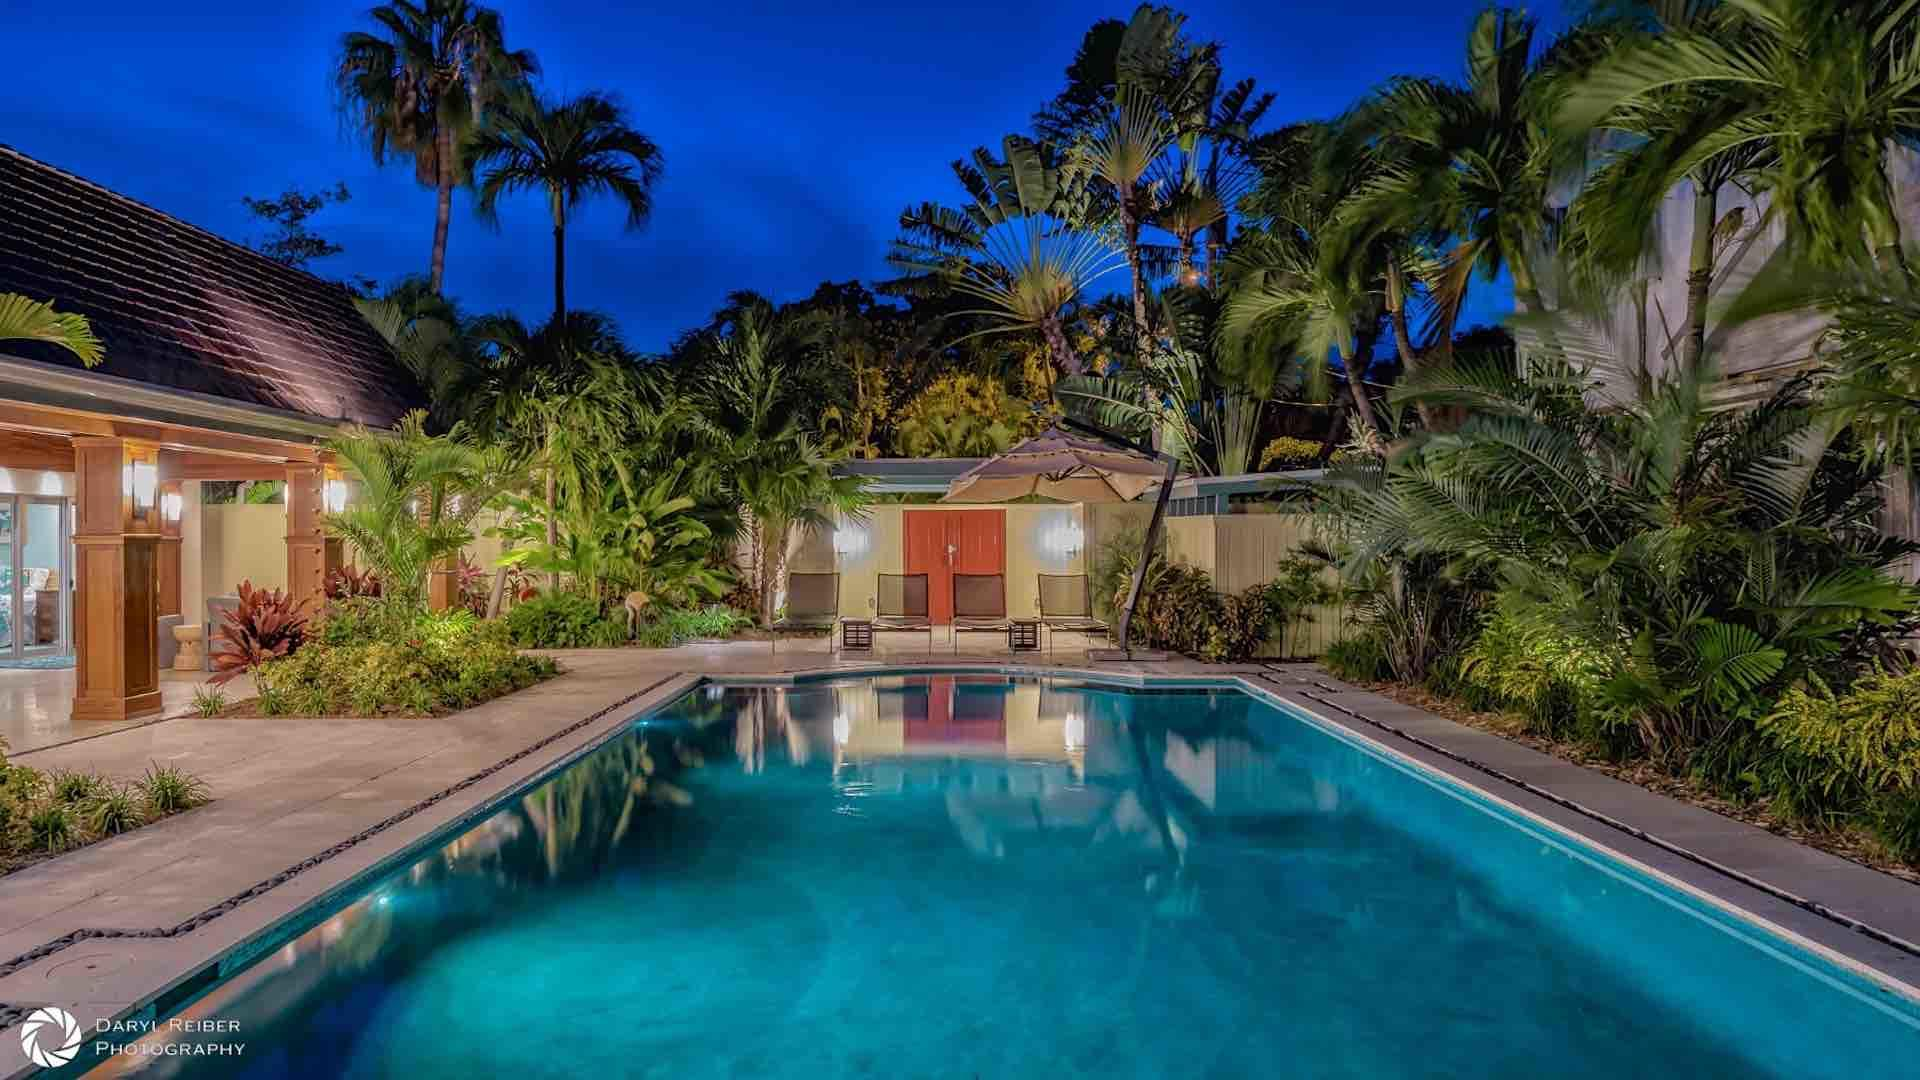 The entire property is surrounded by a privacy wall, and boasts a lushly landscaped front and back yard...